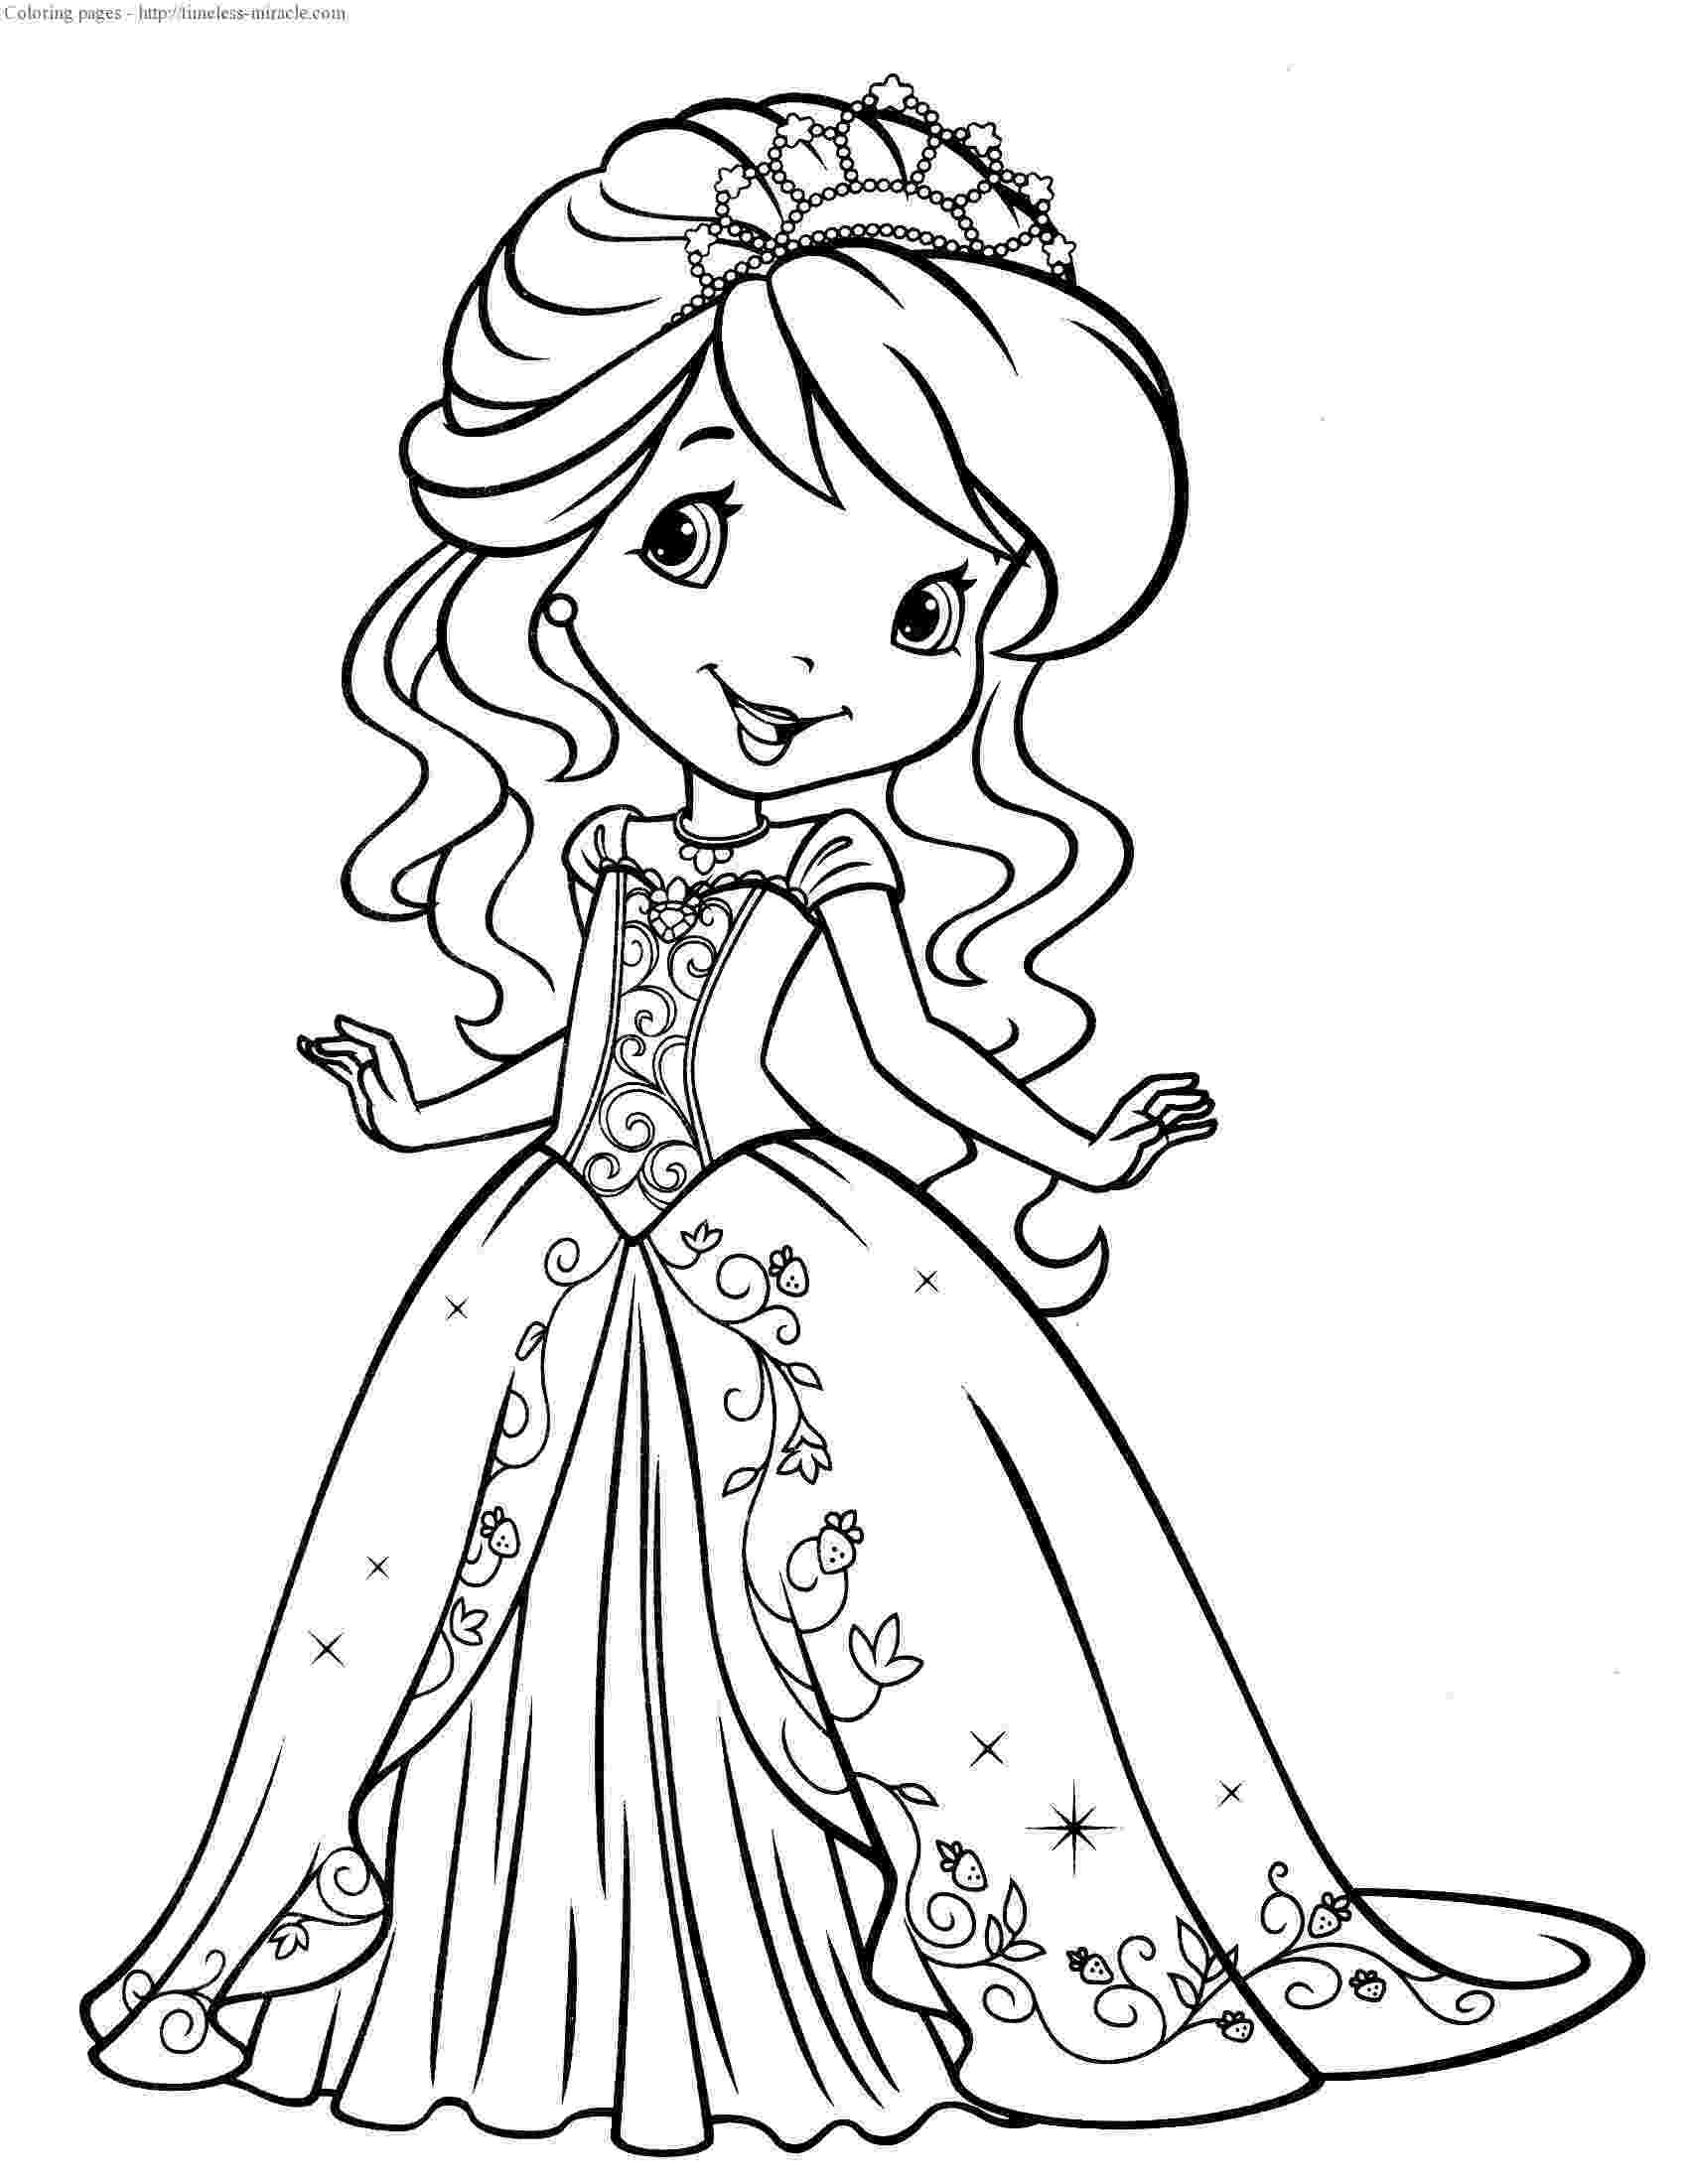 strawberry shortcake princess coloring pages strawberry shortcake coloring pages getcoloringpagescom coloring shortcake pages strawberry princess